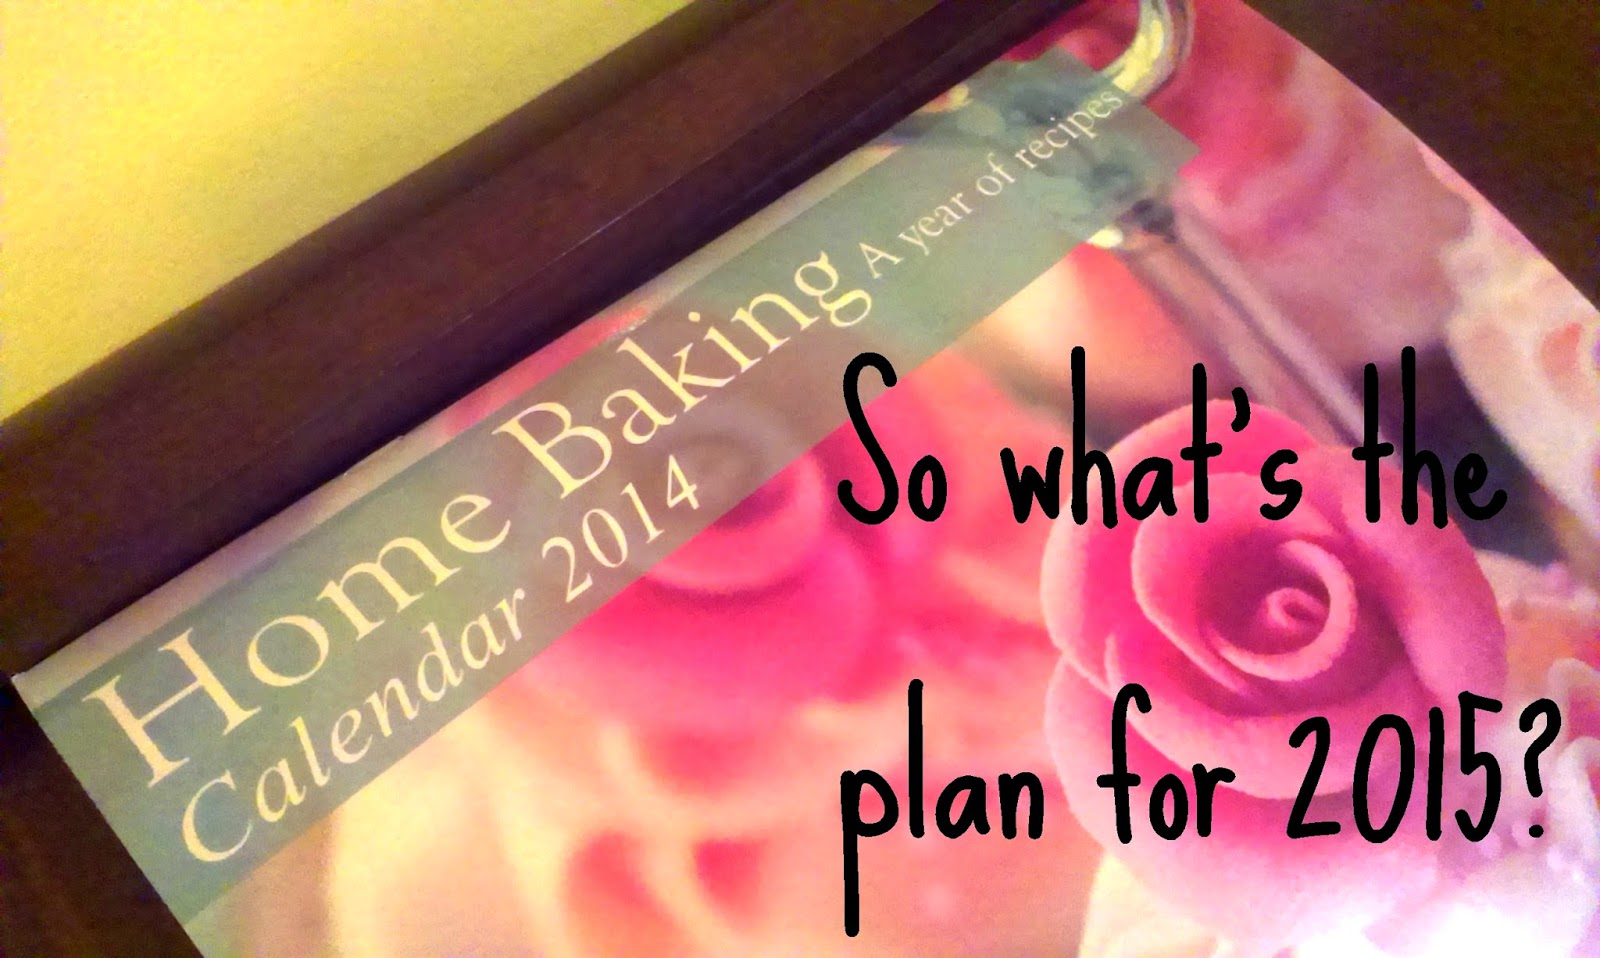 What's the plan for 2015?